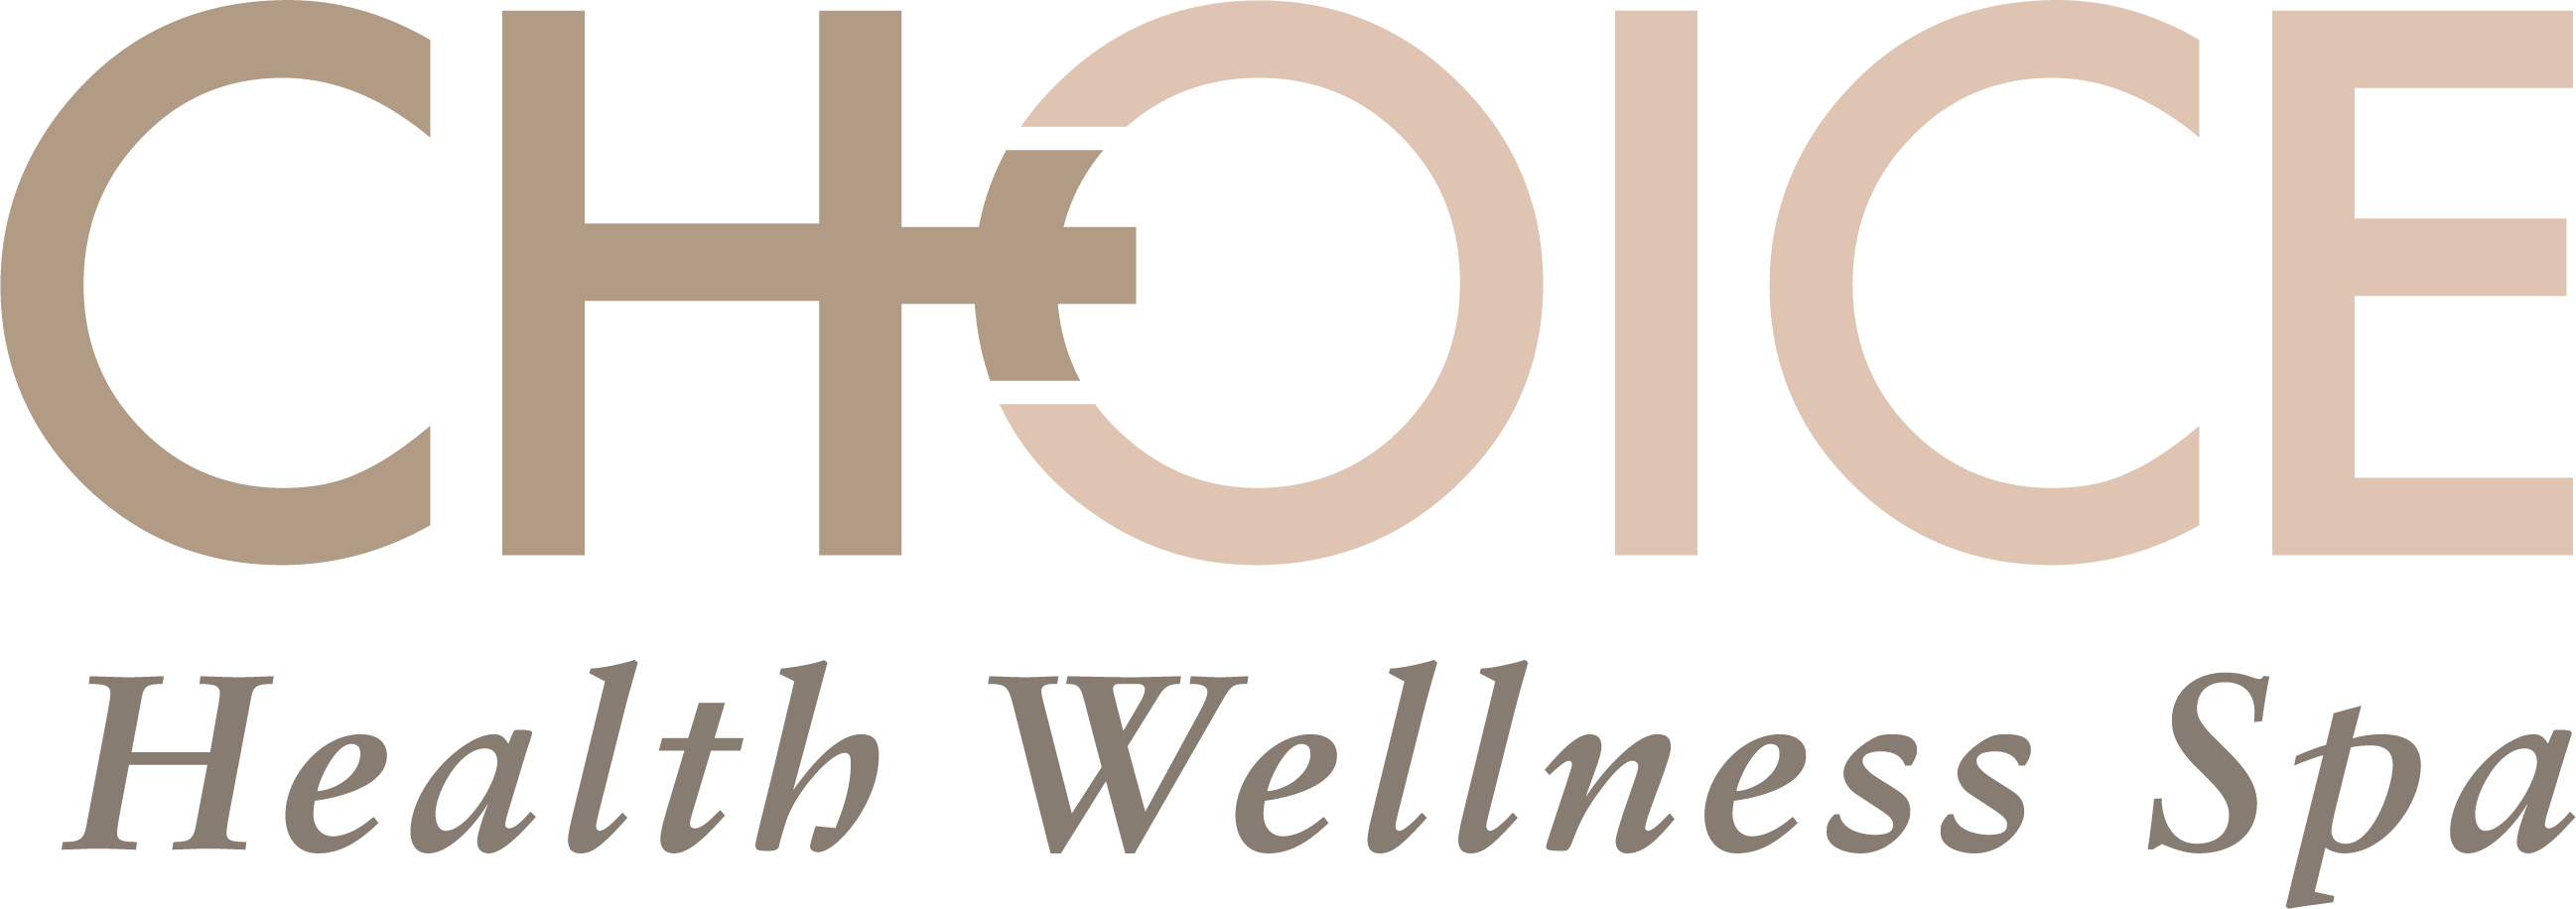 CHOICE HEALTH WELLNESS SPA